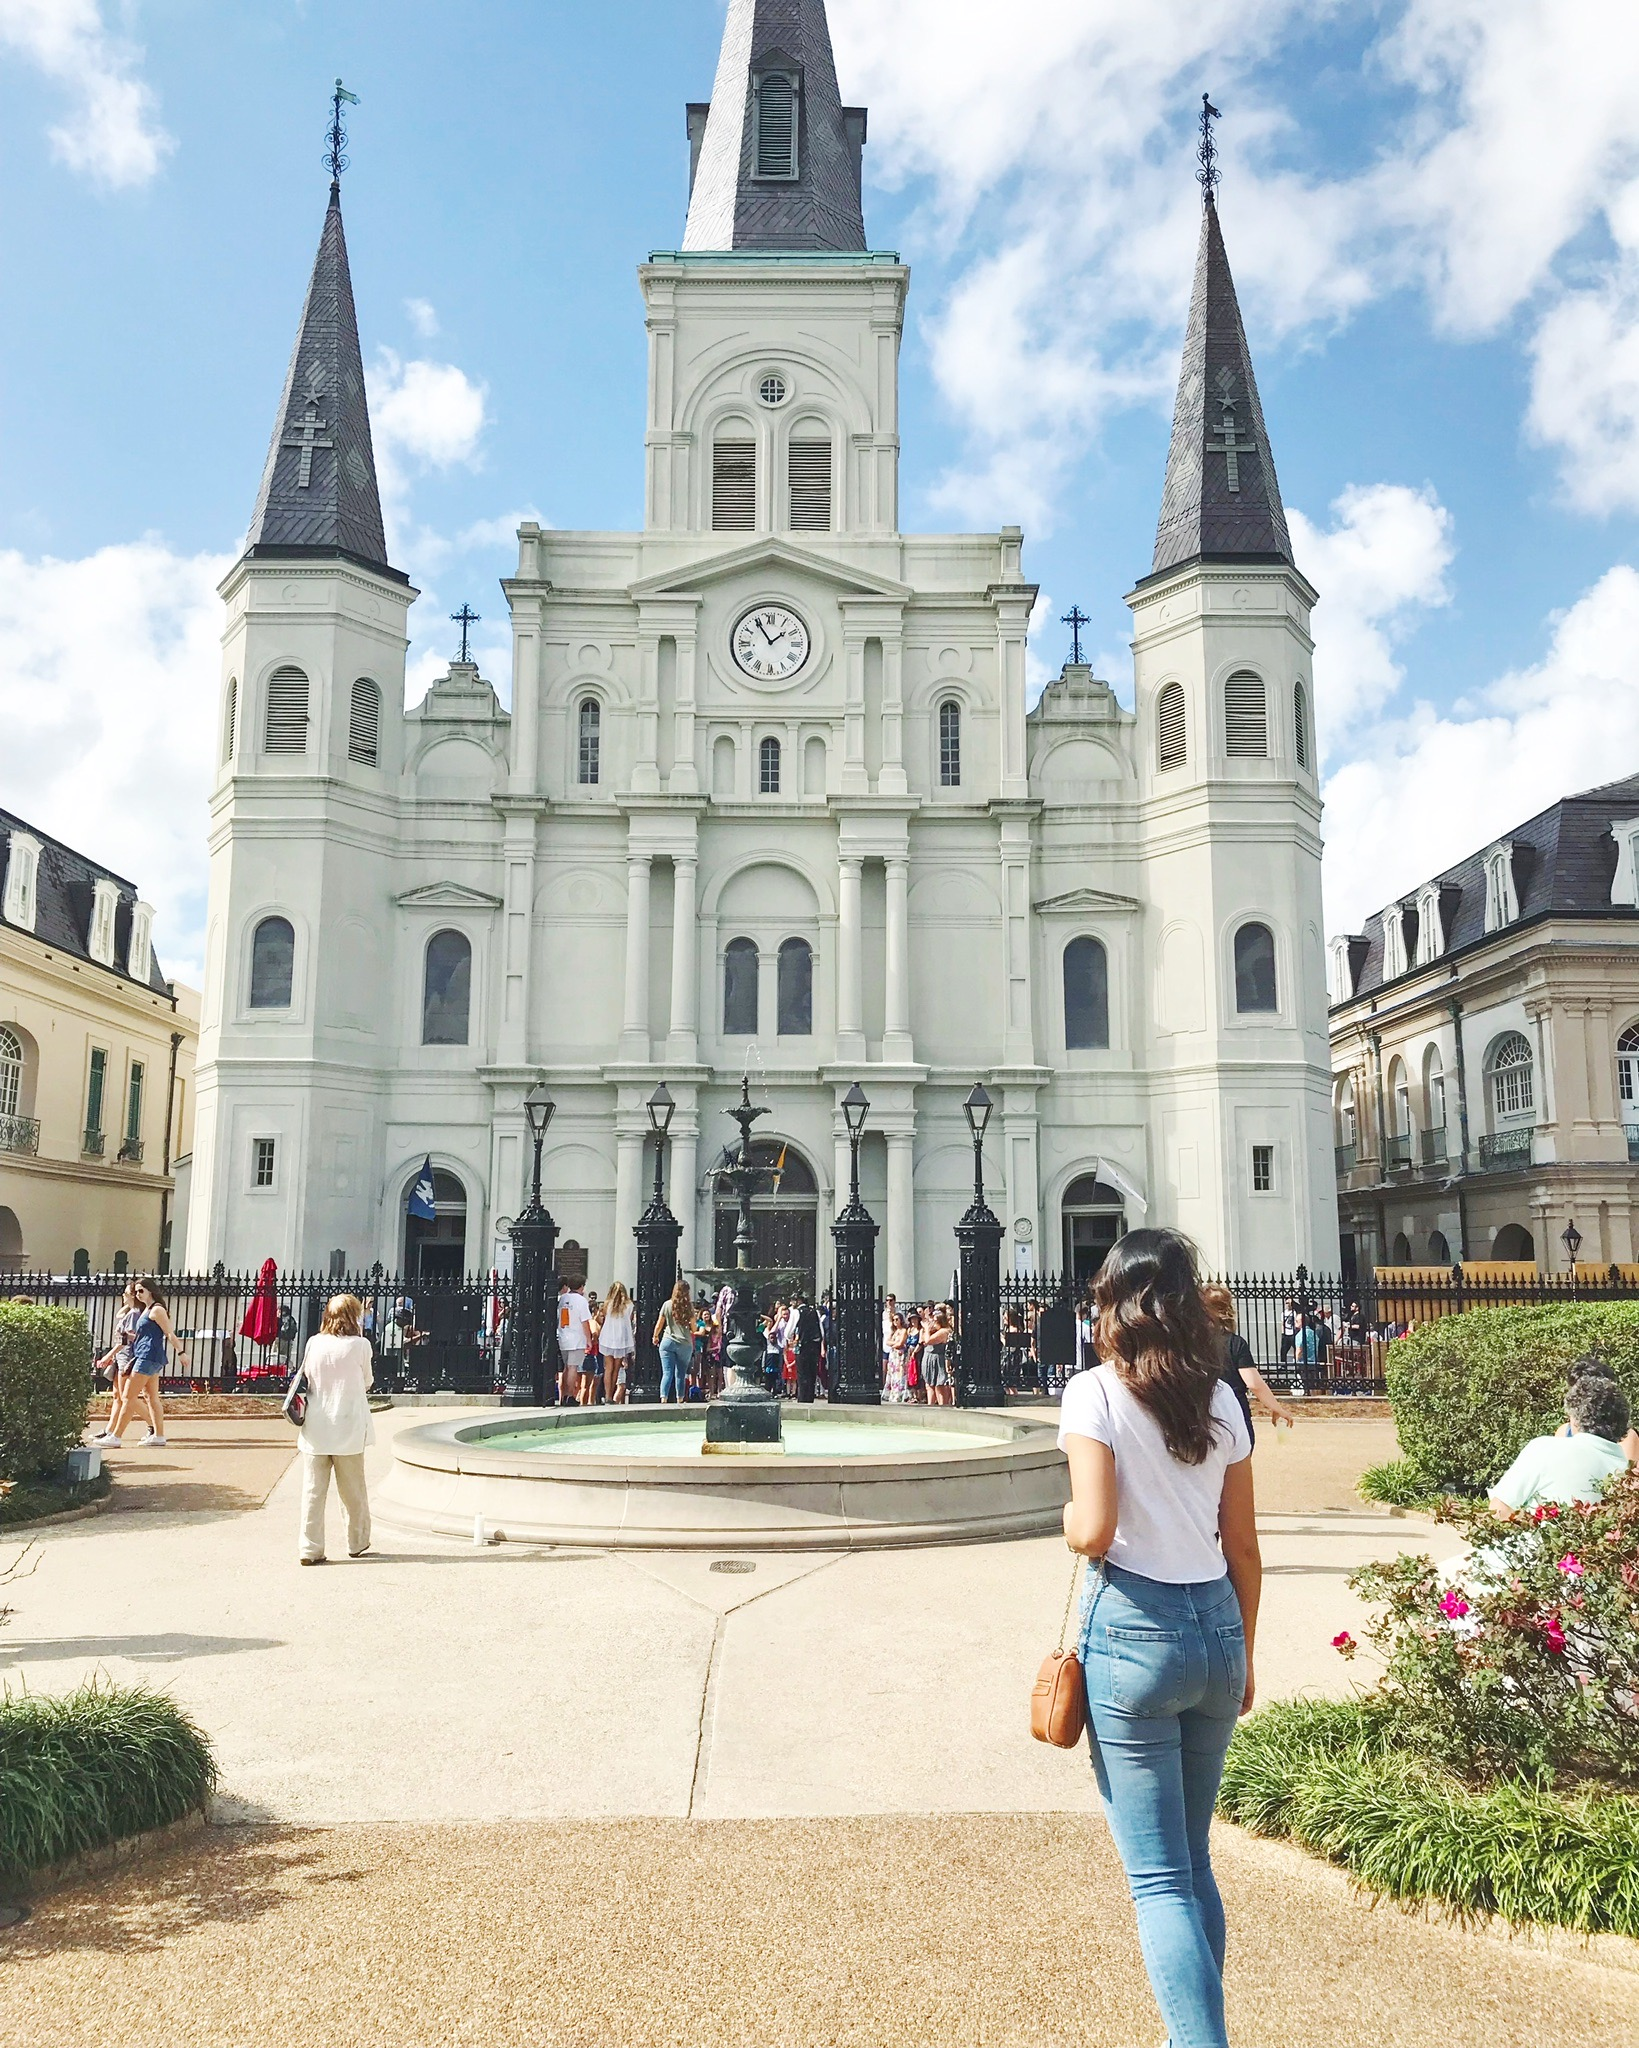 New Orleans - Travel Guide for NOLA